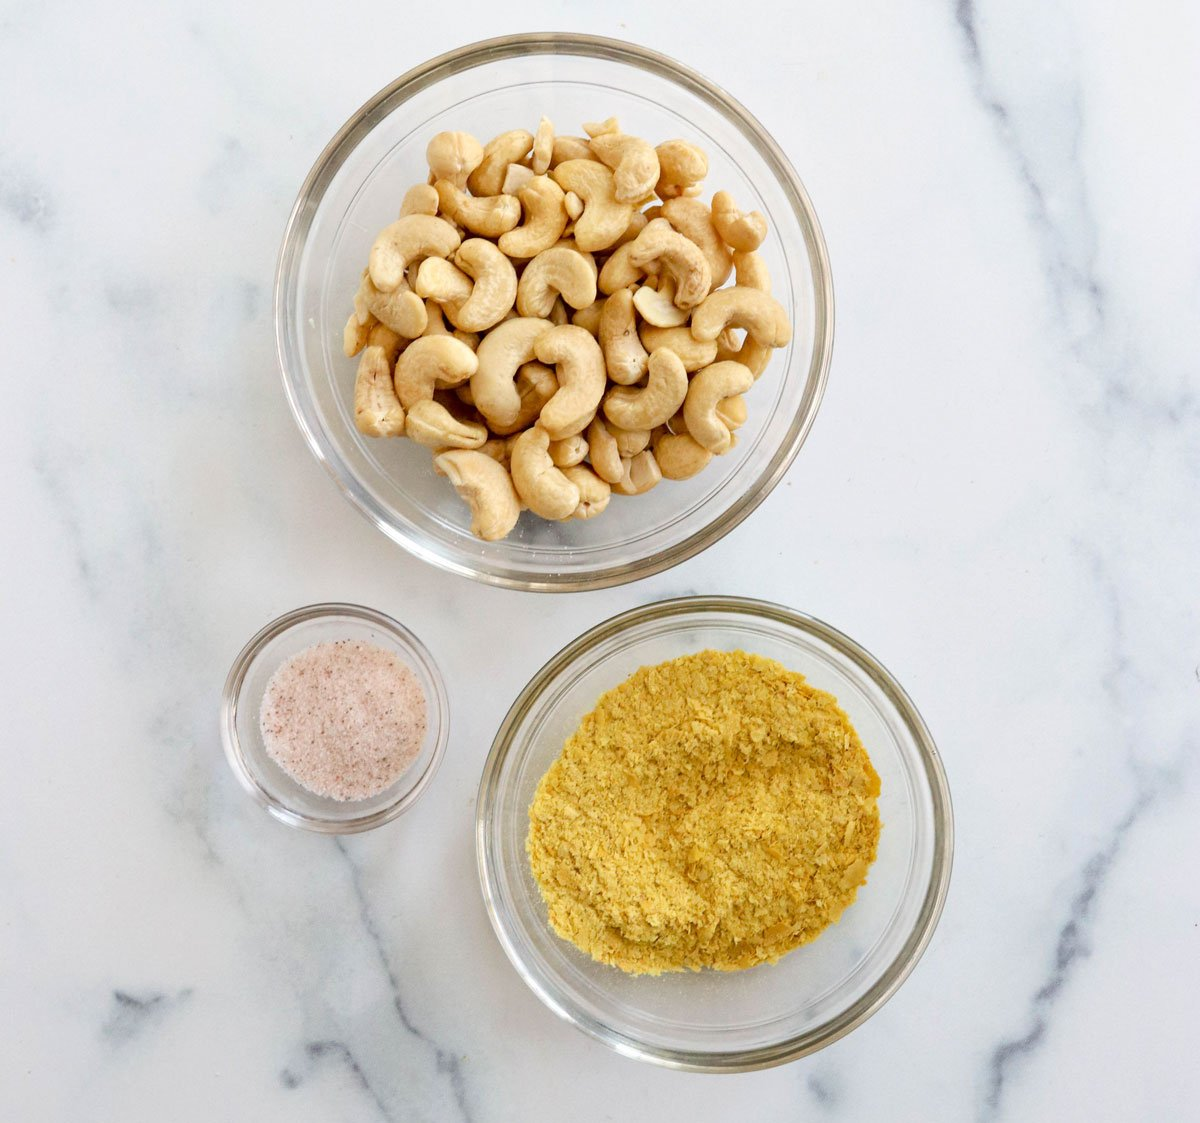 cashews nutritional yeast and salt in glass bowls